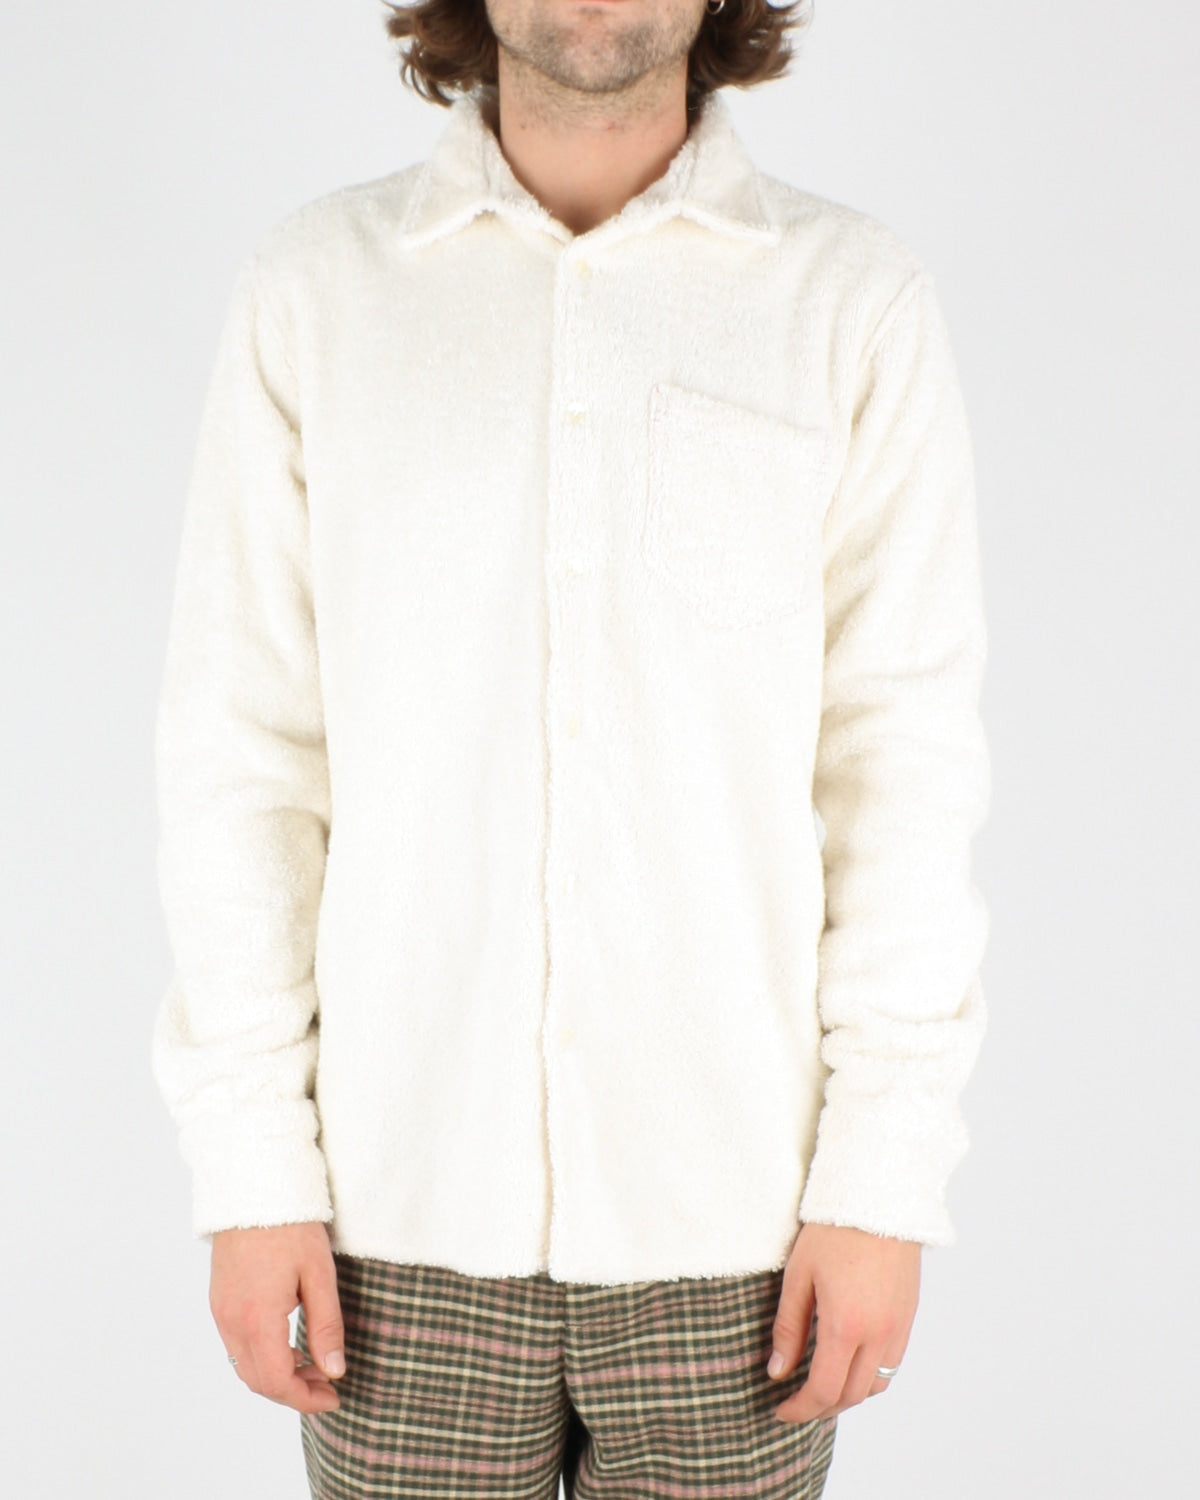 soulland_logan terry shirt_offwhite_1_4